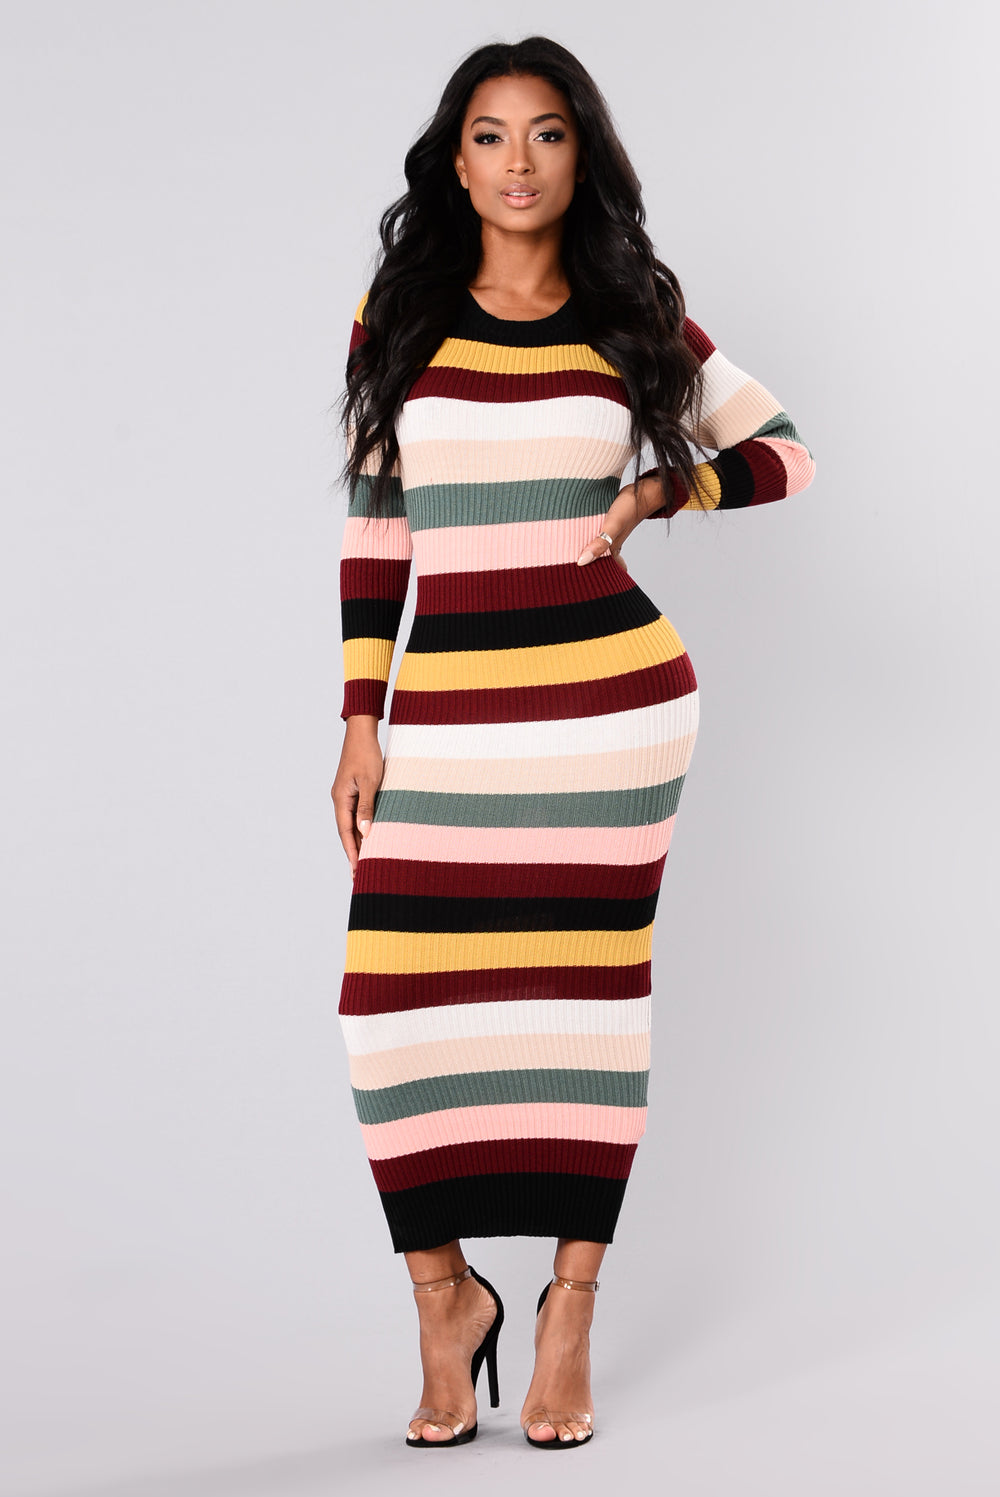 Prime And Pop Striped Dress - Multi